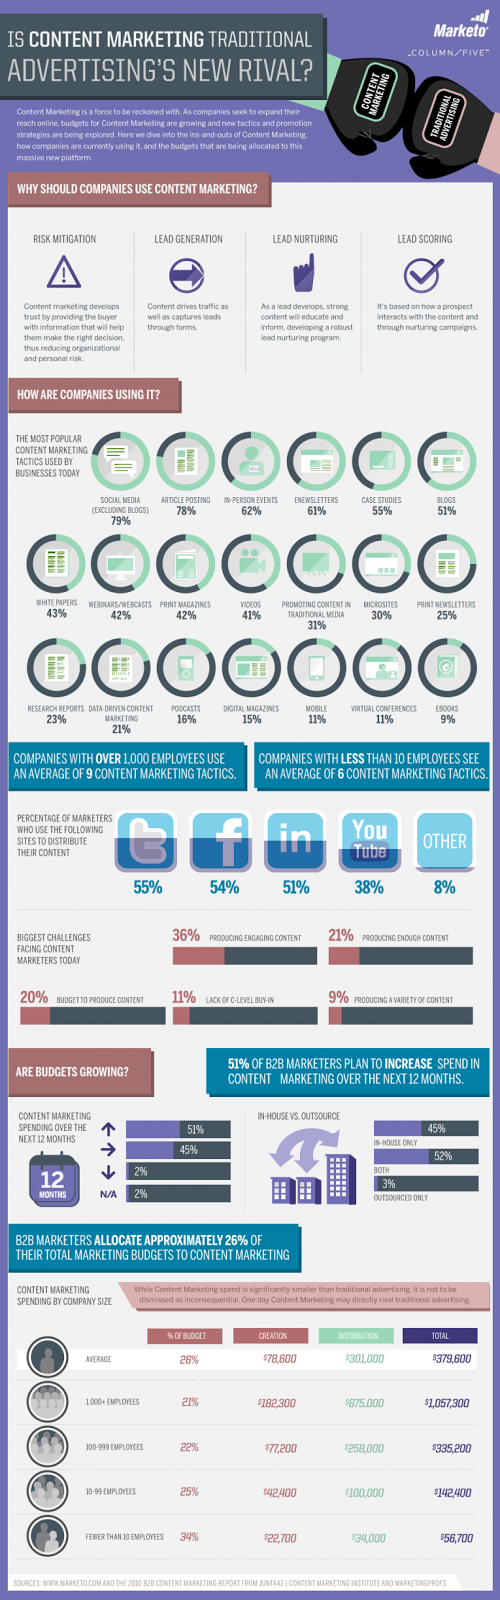 Is Content Marketing Traditional Advertising's New Rival? Infographic